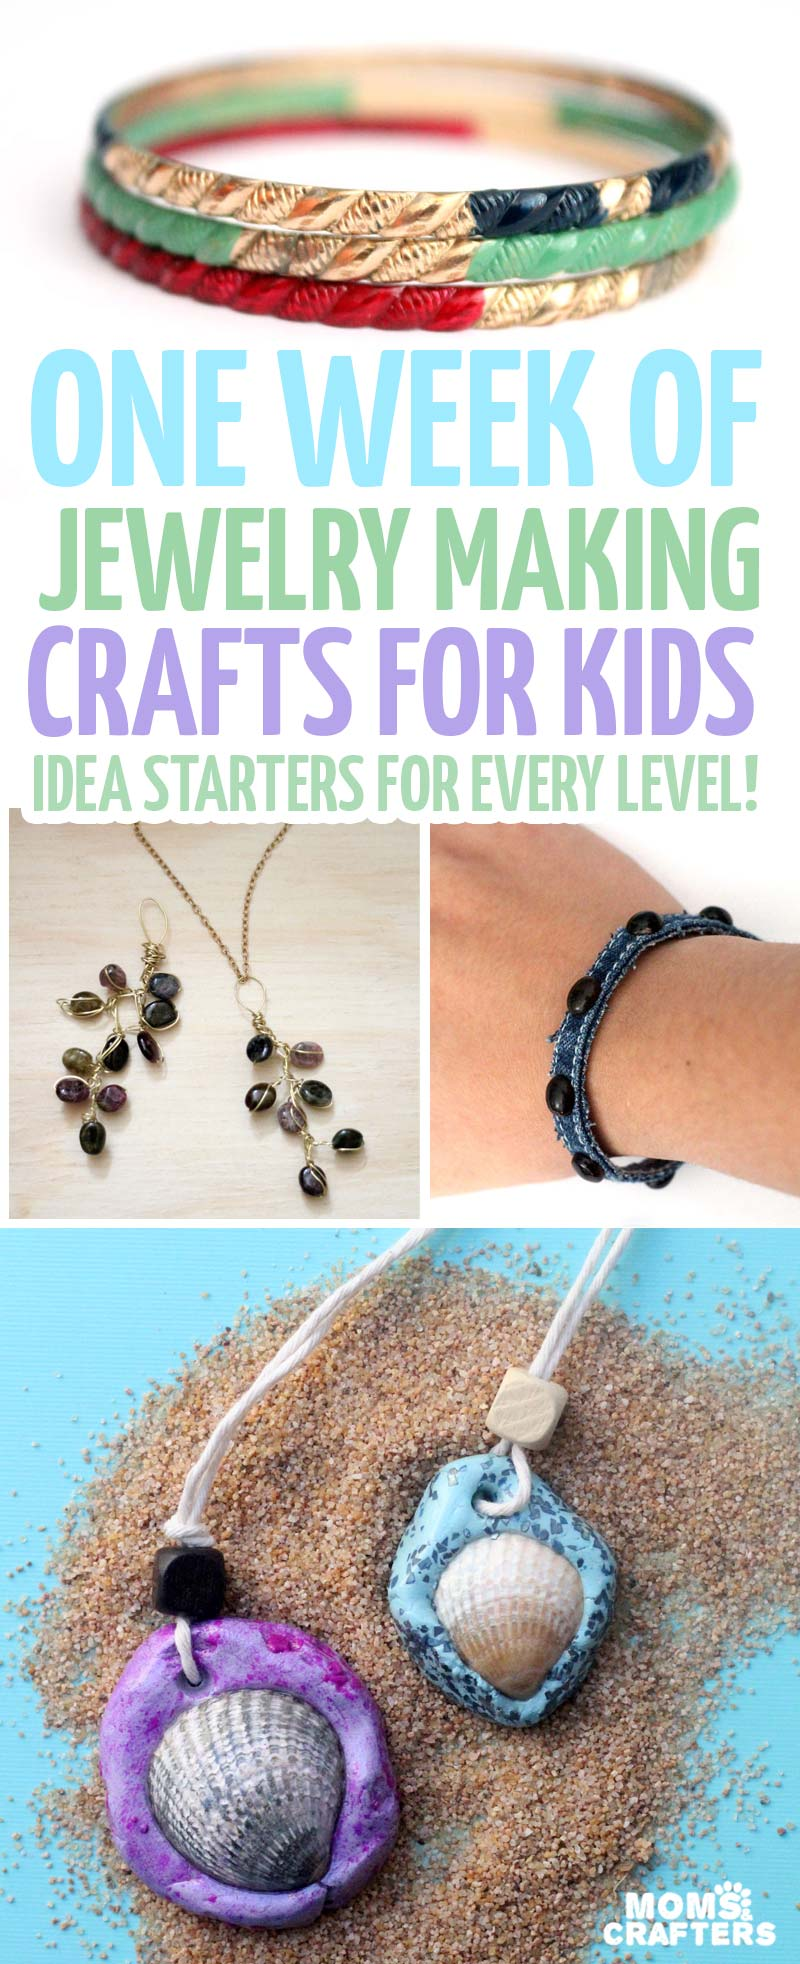 Jewelry Making Crafts One Week Of Easy Ideas Moms And Crafters